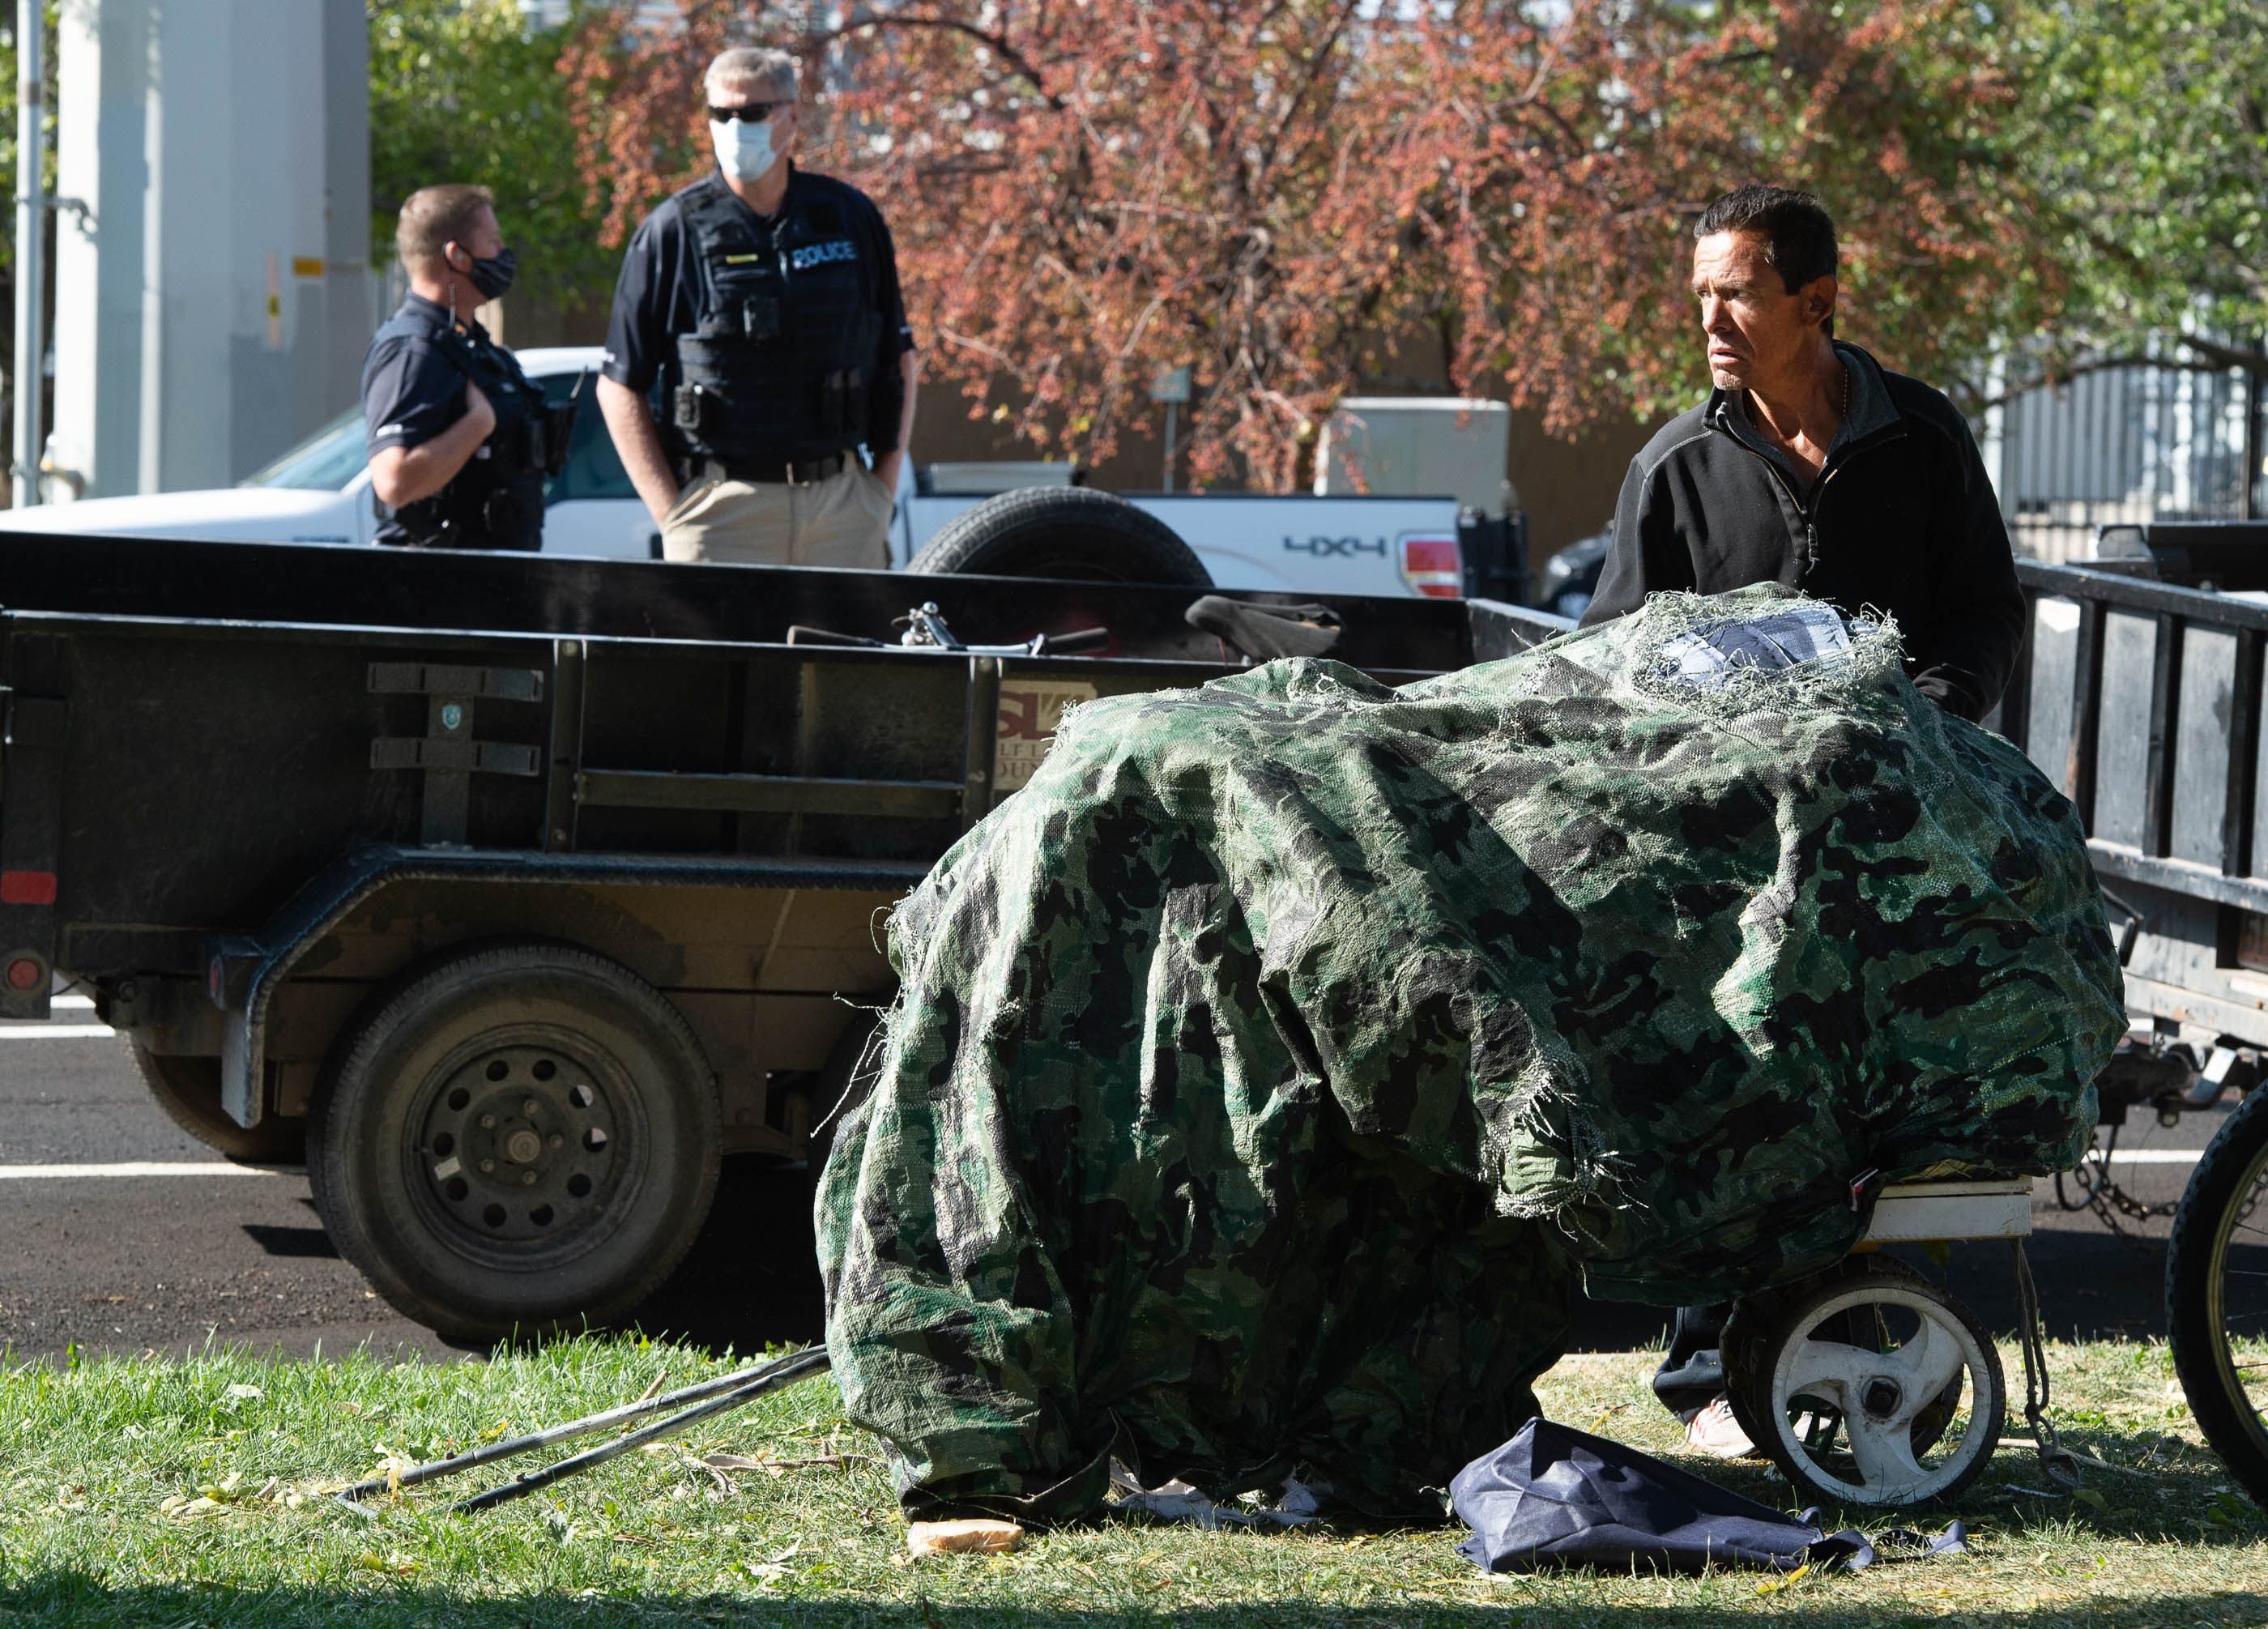 (Francisco Kjolseth  |  The Salt Lake Tribune) Daniel Castiano is forced to pack up his belonging as the Salt Lake County Health Department cleans up the homeless camp set up near Taufer Park in Salt Lake City on Thursday, Sept. 10, 2020. Notified the day before, the health department, backed by police, cleaned up the camps as homeless advocates confronted the police abhorring their actions.